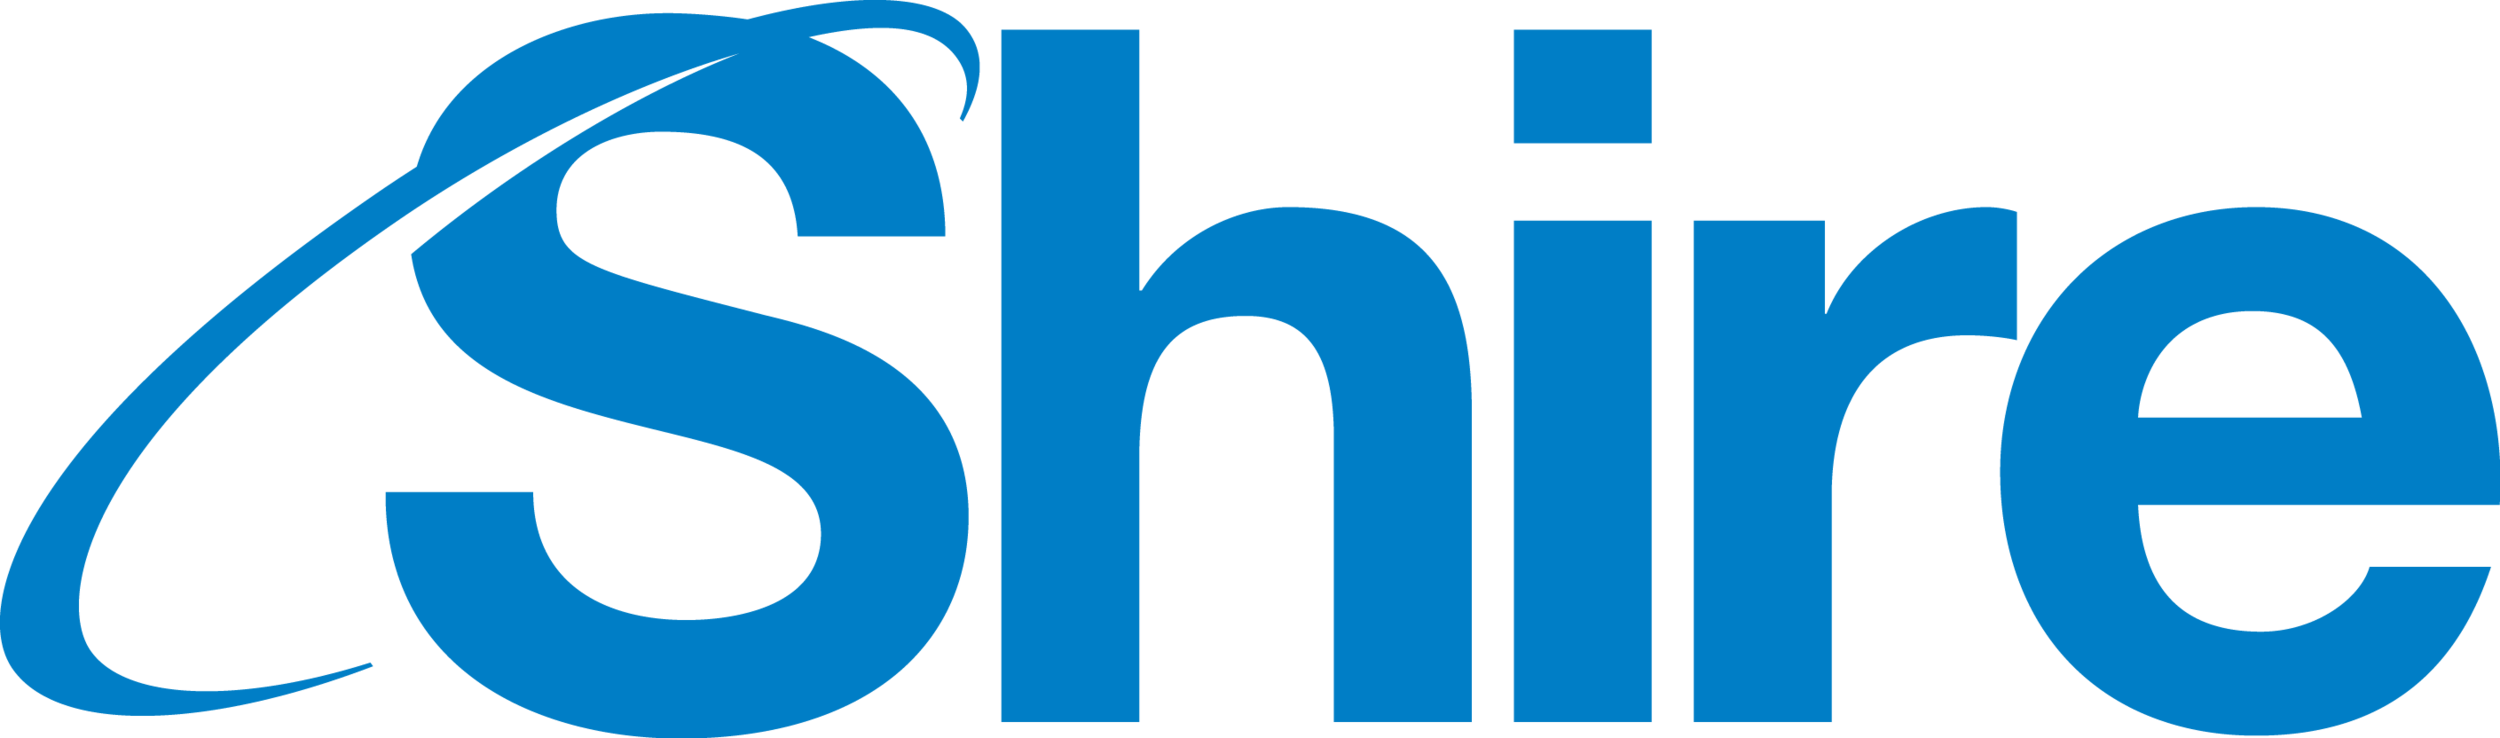 shire-logo.png